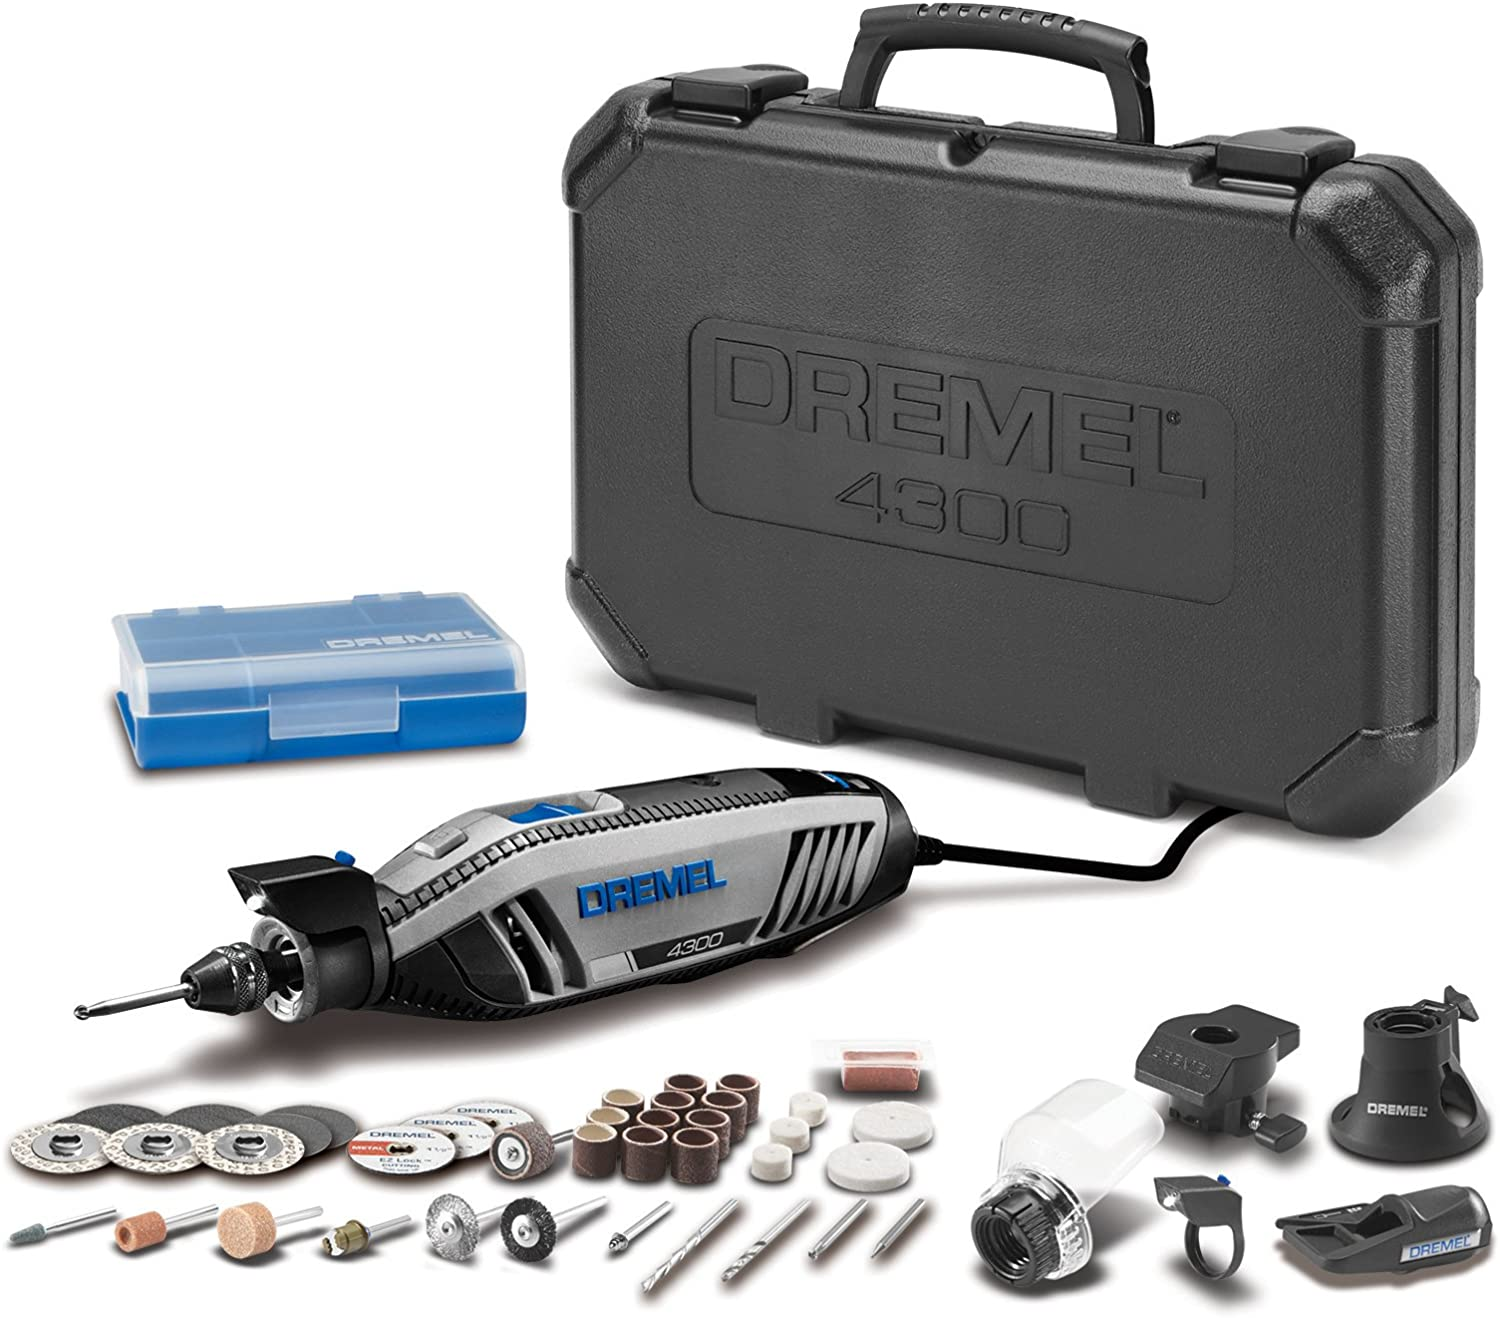 Dremel 4300-5/40 High Performance Rotary Tool